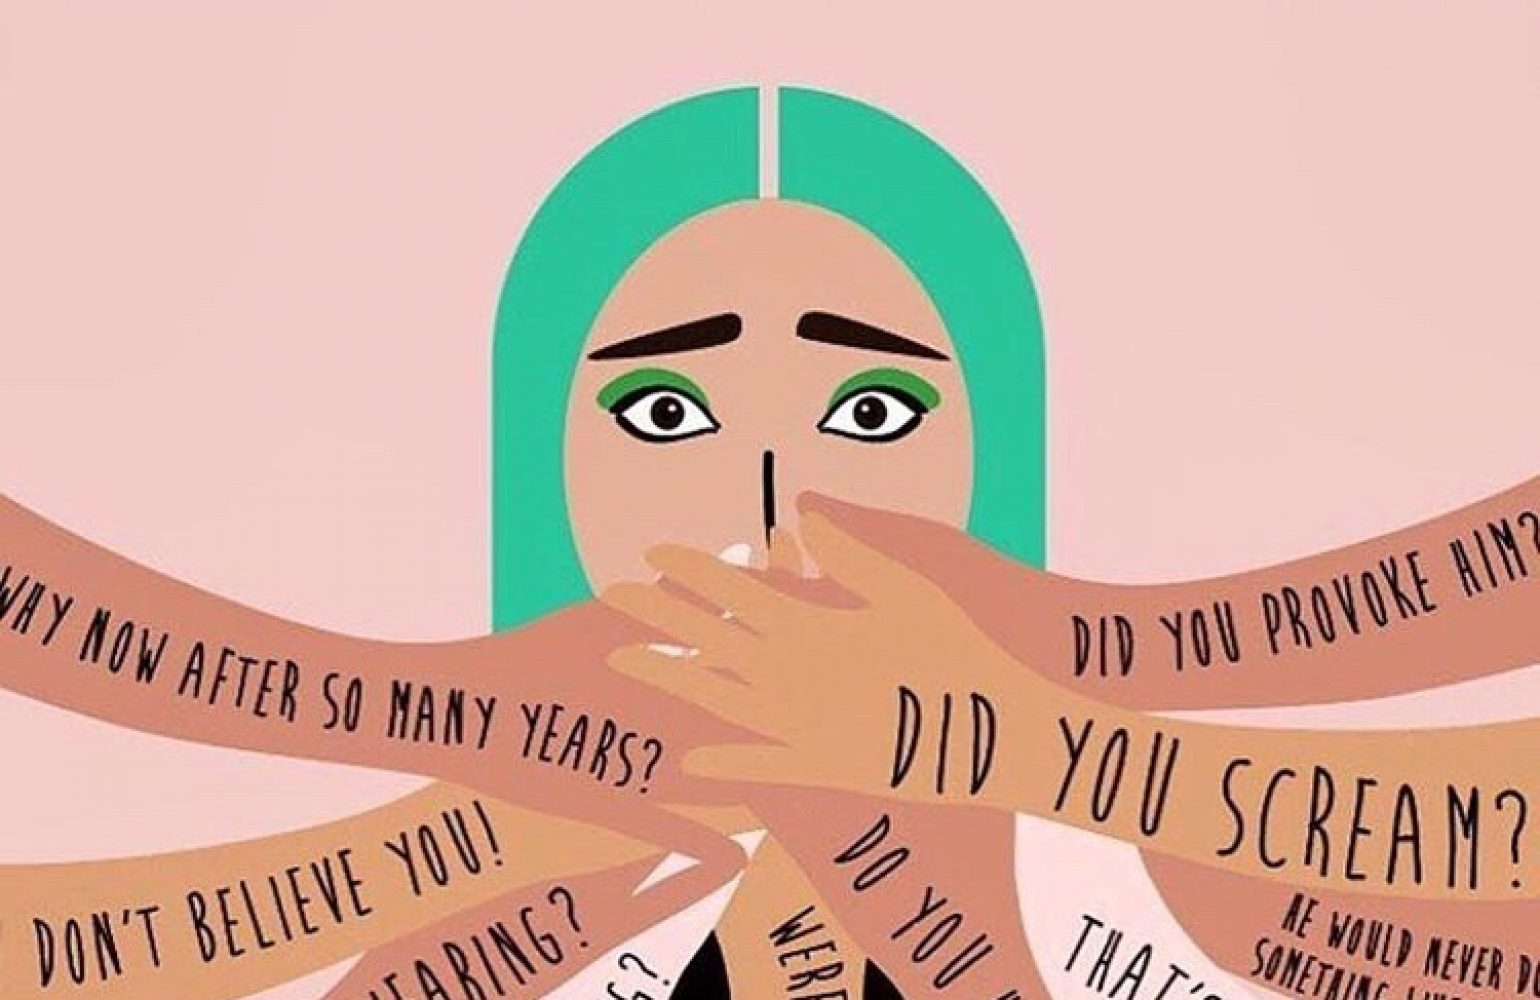 Media Matters for Democracy contributes to the global #WhyIDidn'tReport, a campaign to collate and highlight stories of abuse victims for #16DaysOfActivism